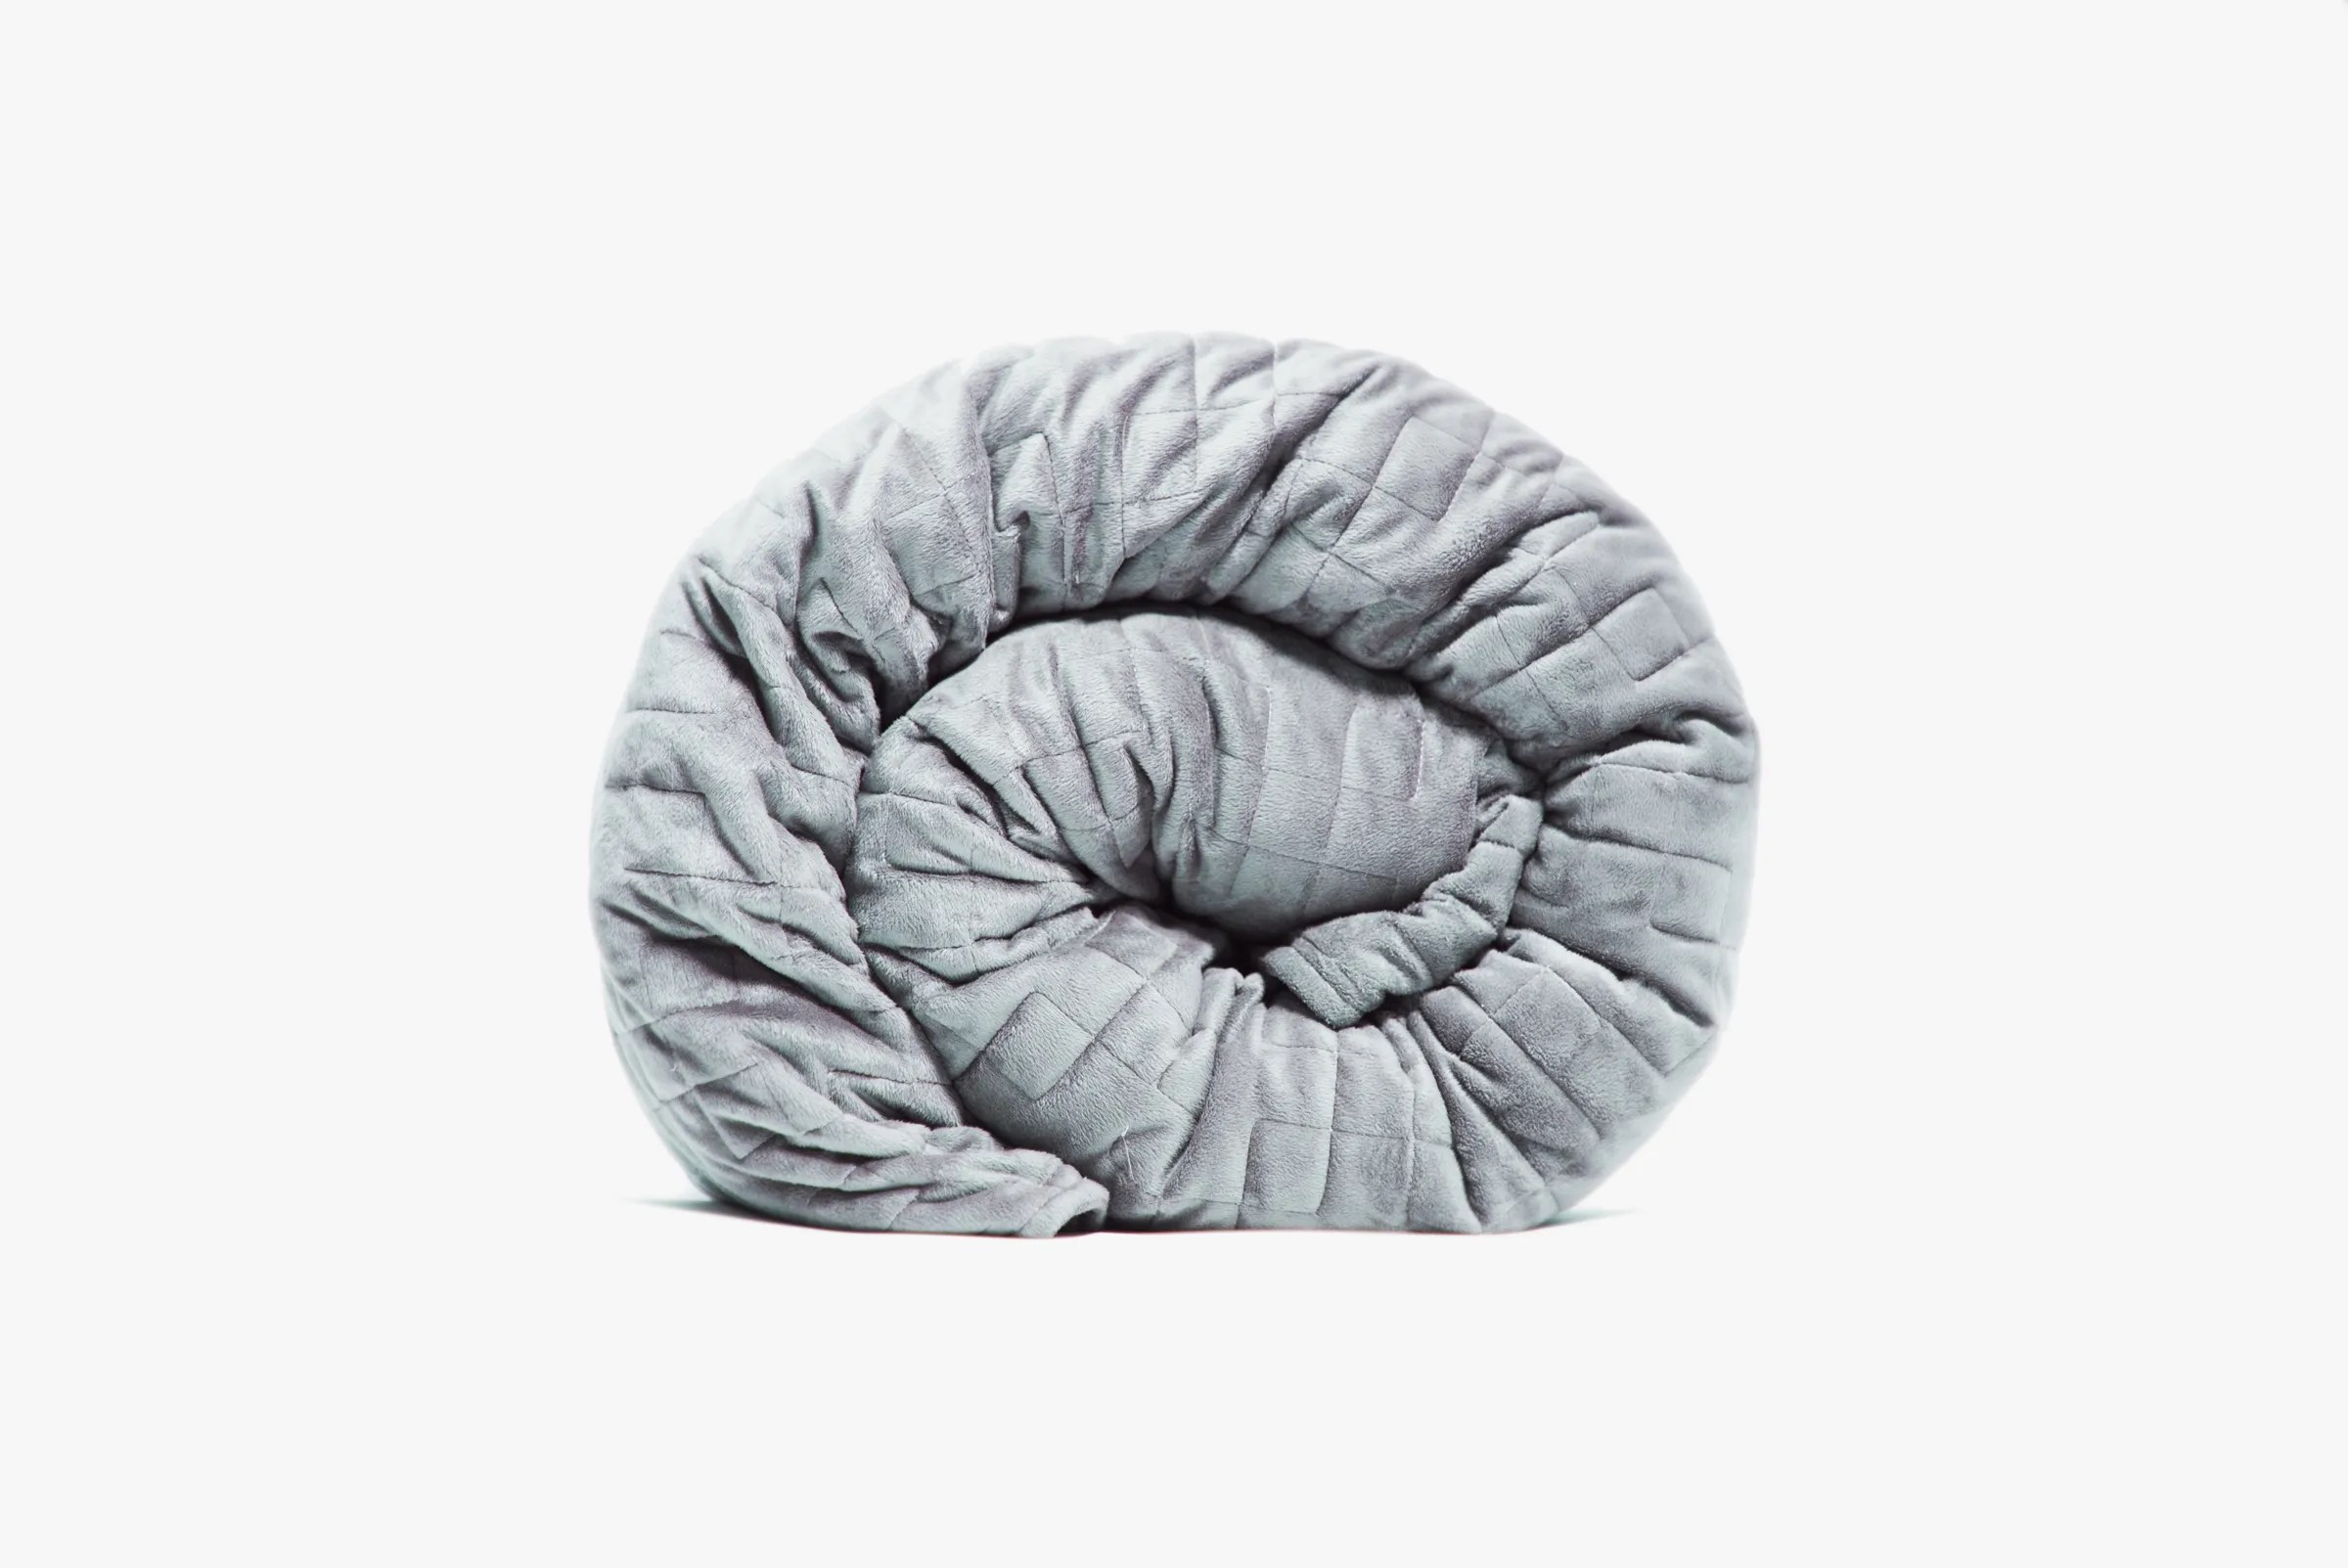 the weighted gravity blanket